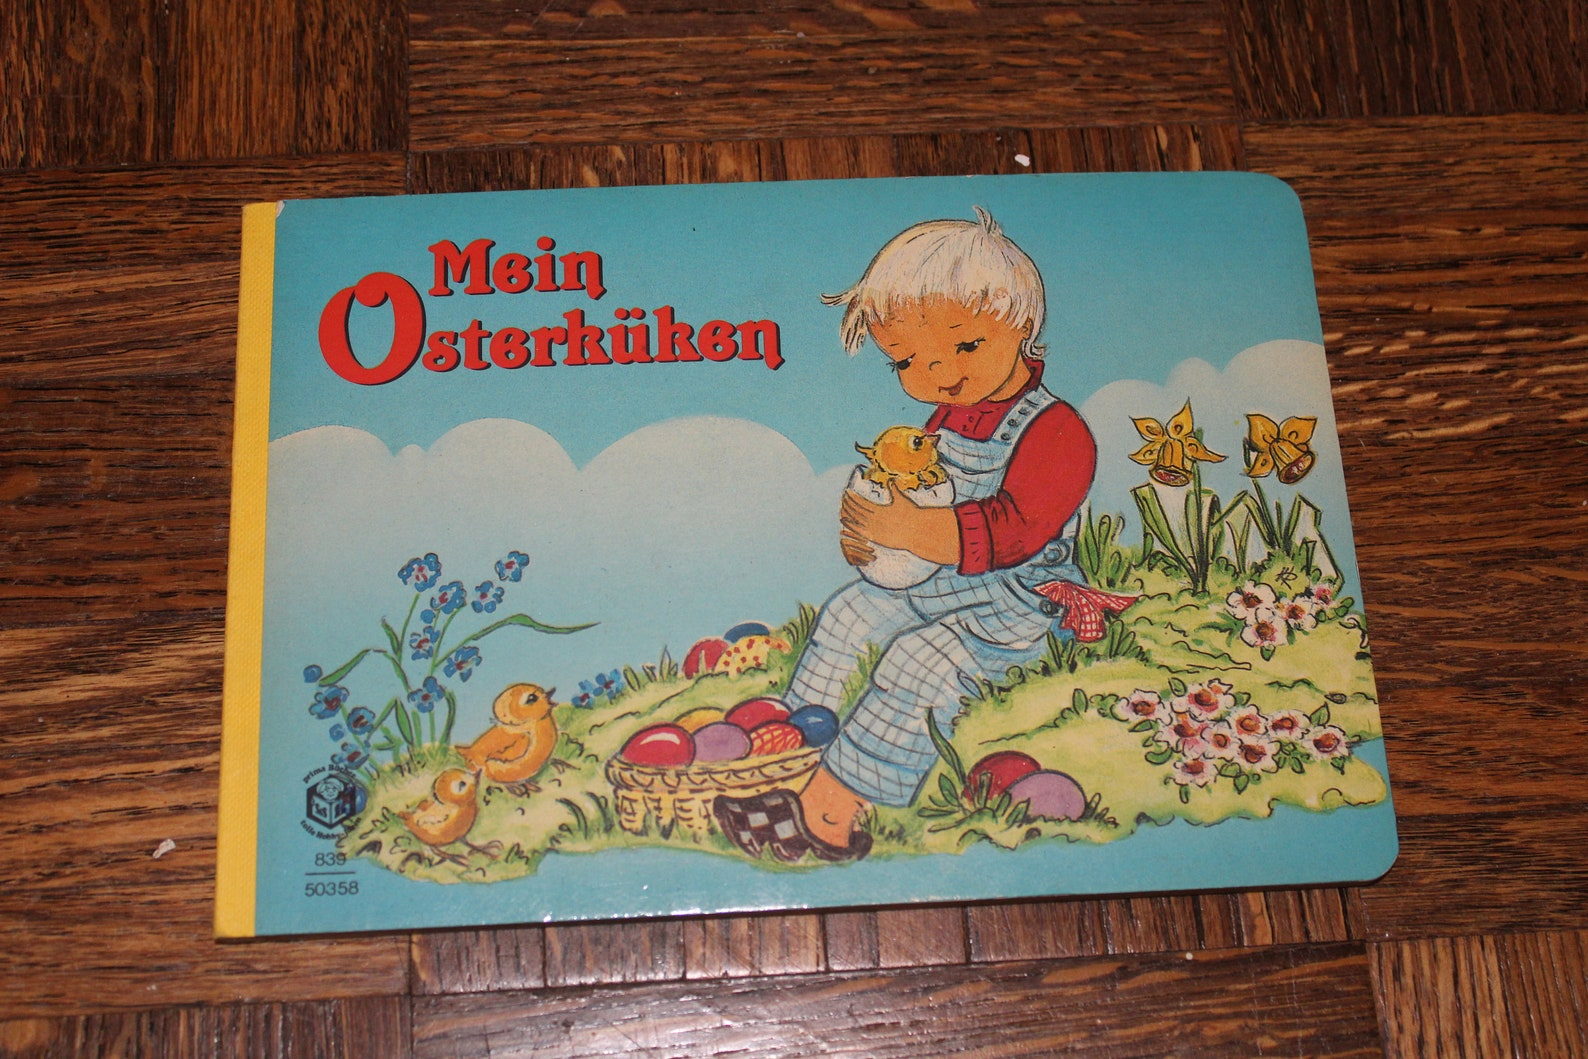 Mein Osterkuken My Easter Chick German Language Board Book